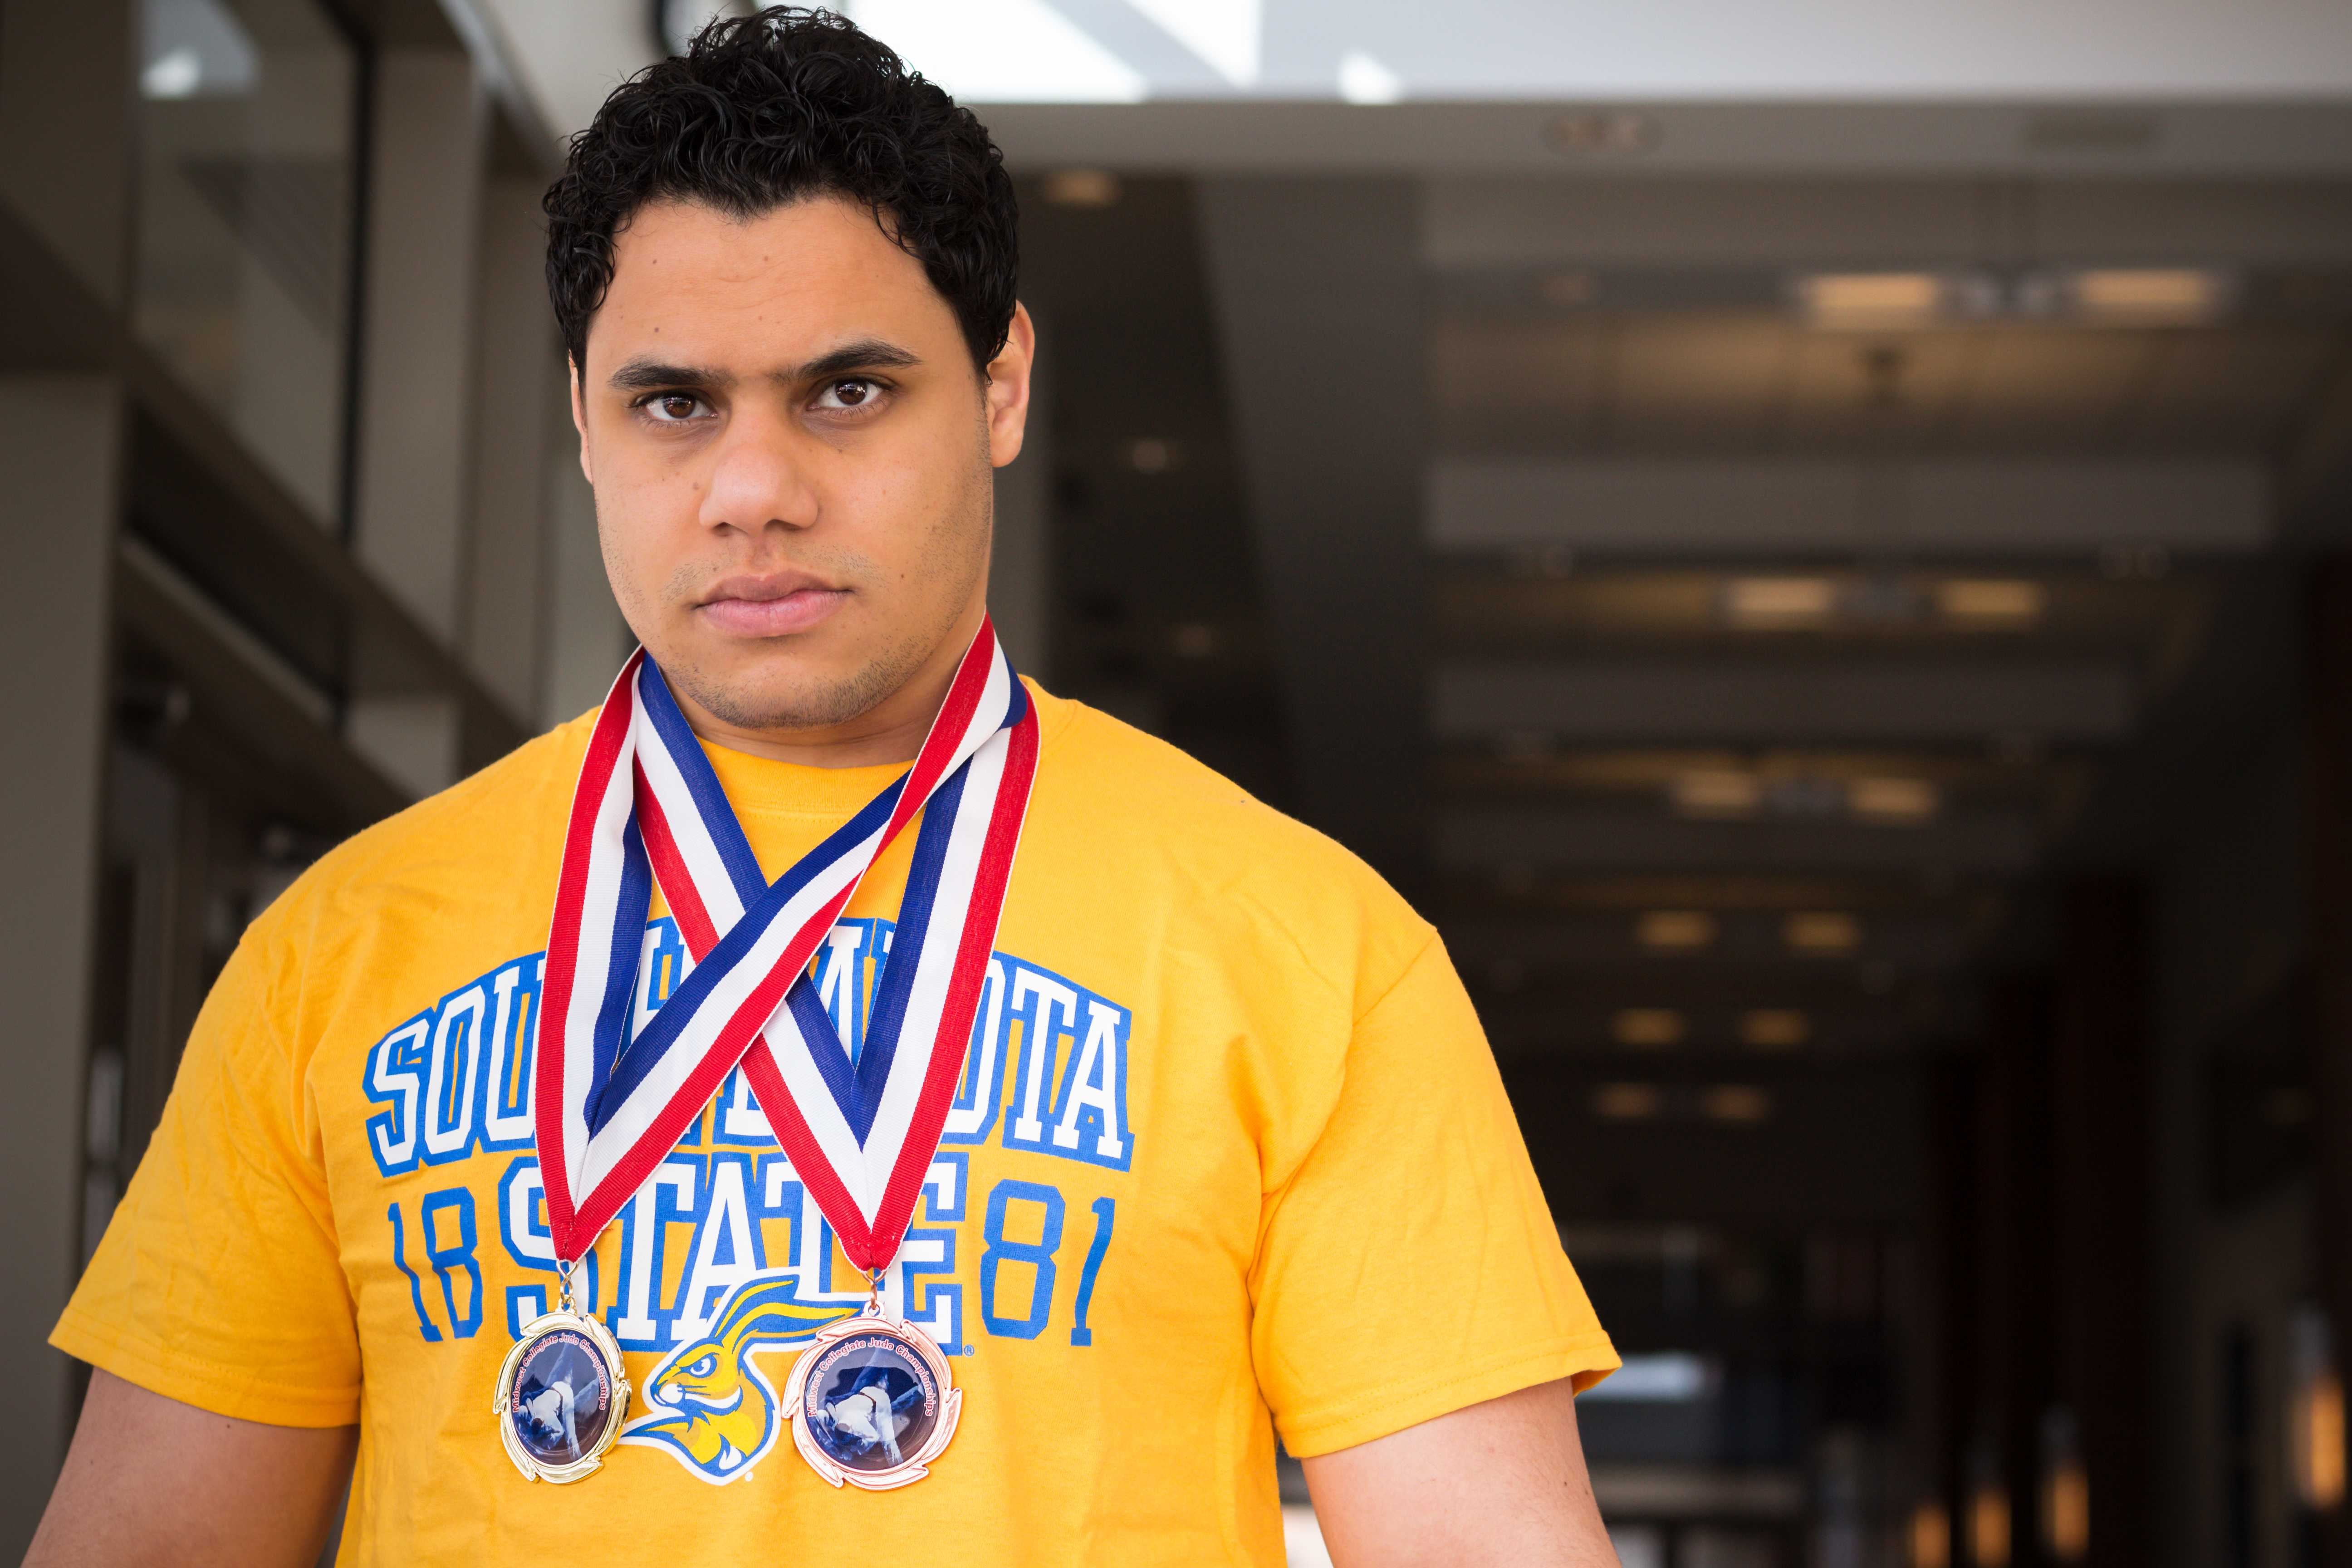 FRANKIE HERRERA Ahmed Abouelhassan, junior civil engineering major, represented SDSU at the 2018 Midwest Collegiate Judo Championship Feb. 10 in Savoy, Illinois.  Abouelhassan won the gold medal for 100 kgs in the collegiate division and bronze in the senior heavyweight category.